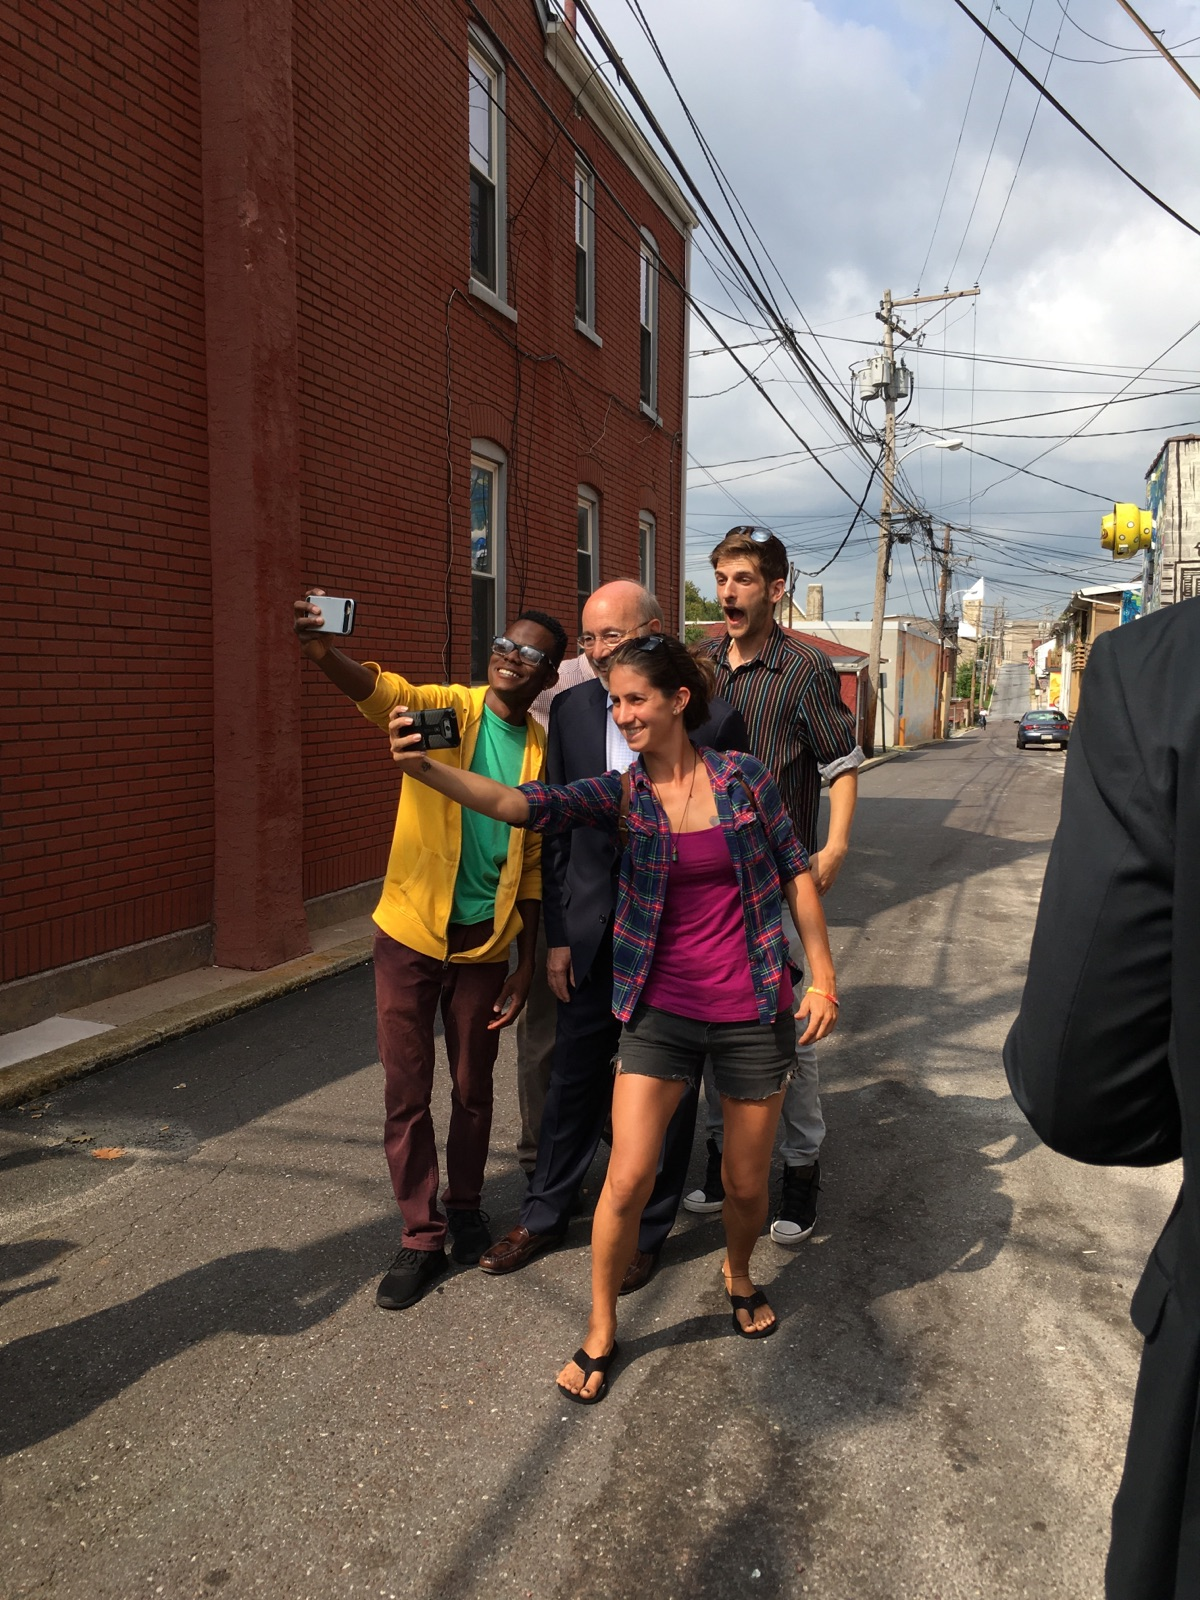 Governor Wolf visits murals